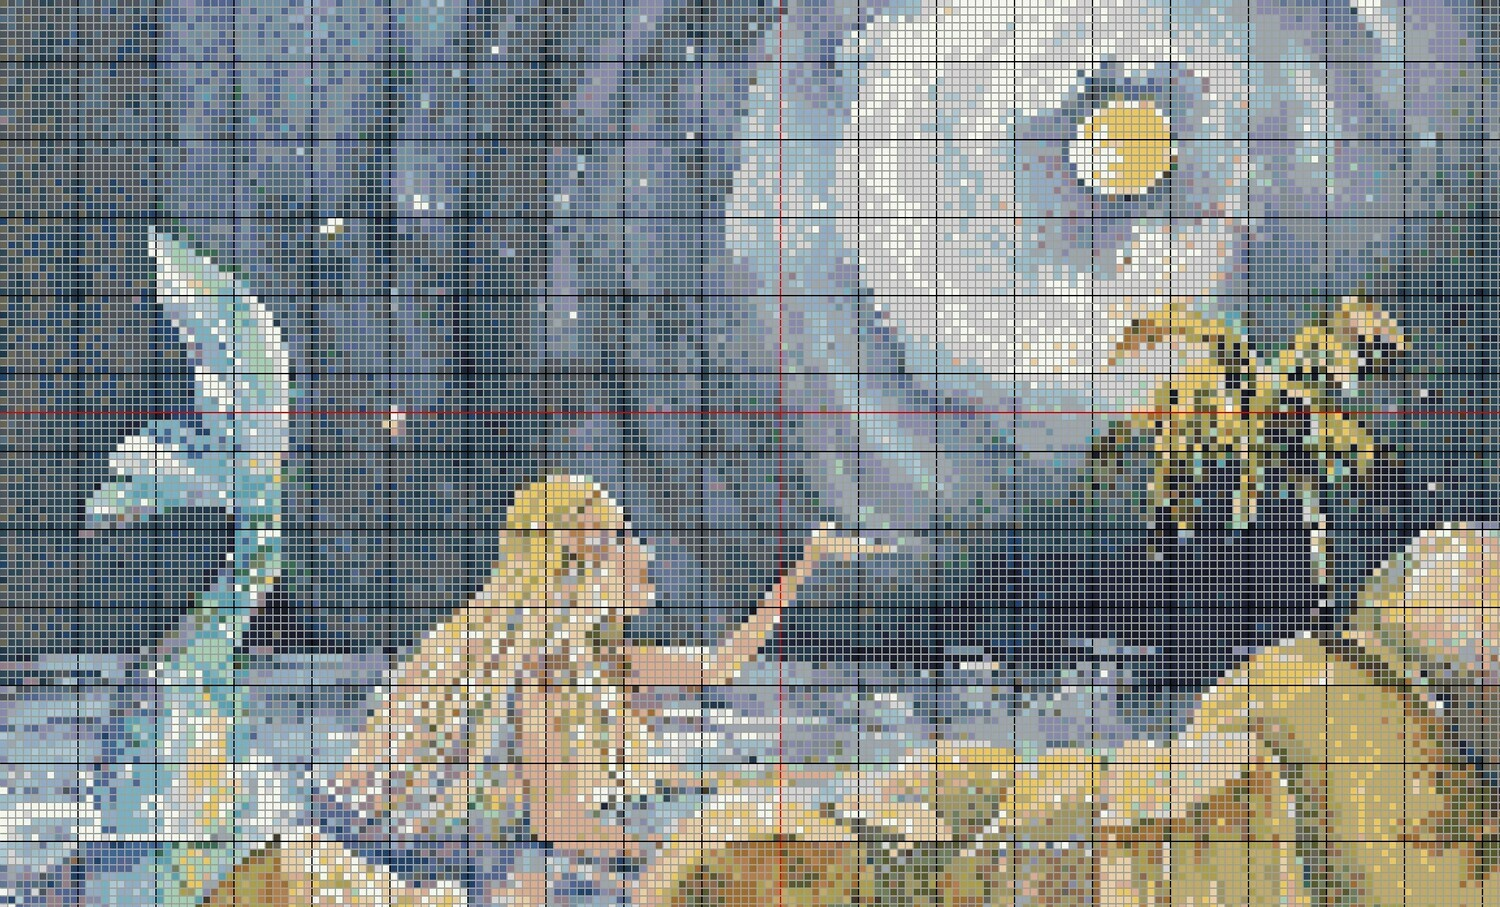 Moonglow Mermaid Cross Stitch - Pattern Only - Instant Digital Download